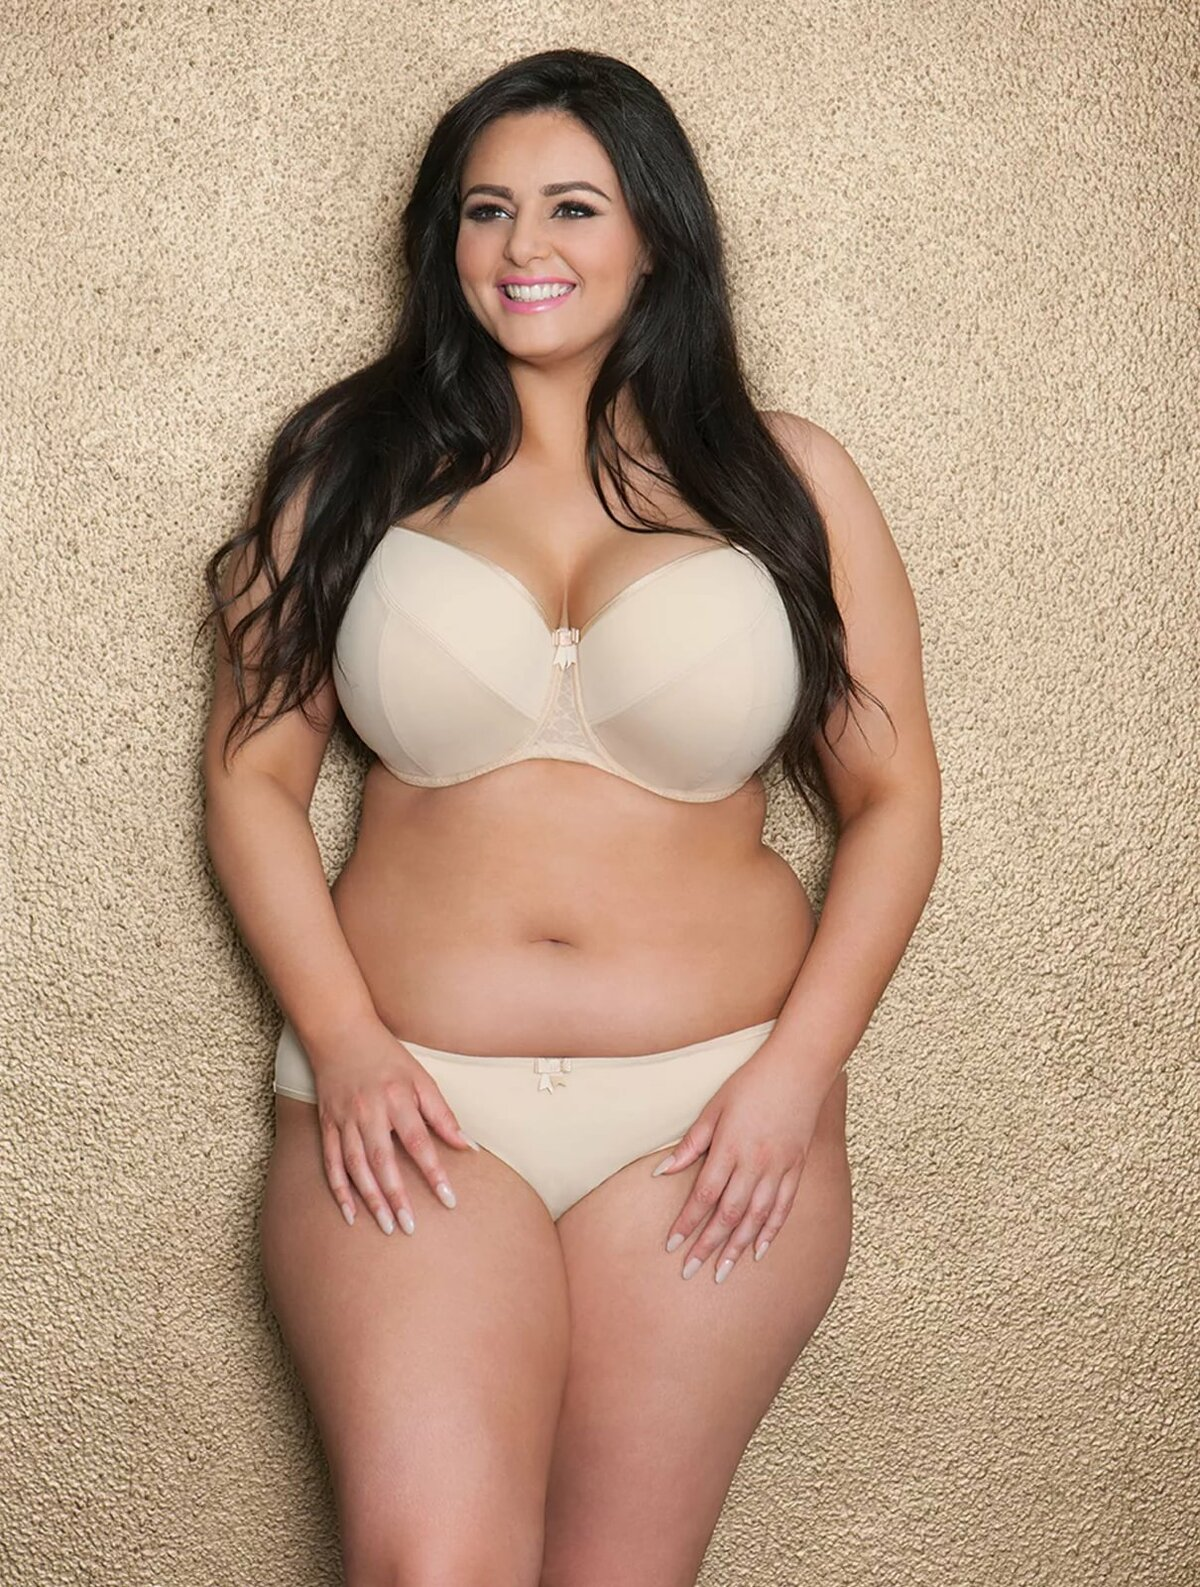 plus-size-beauties-galleries